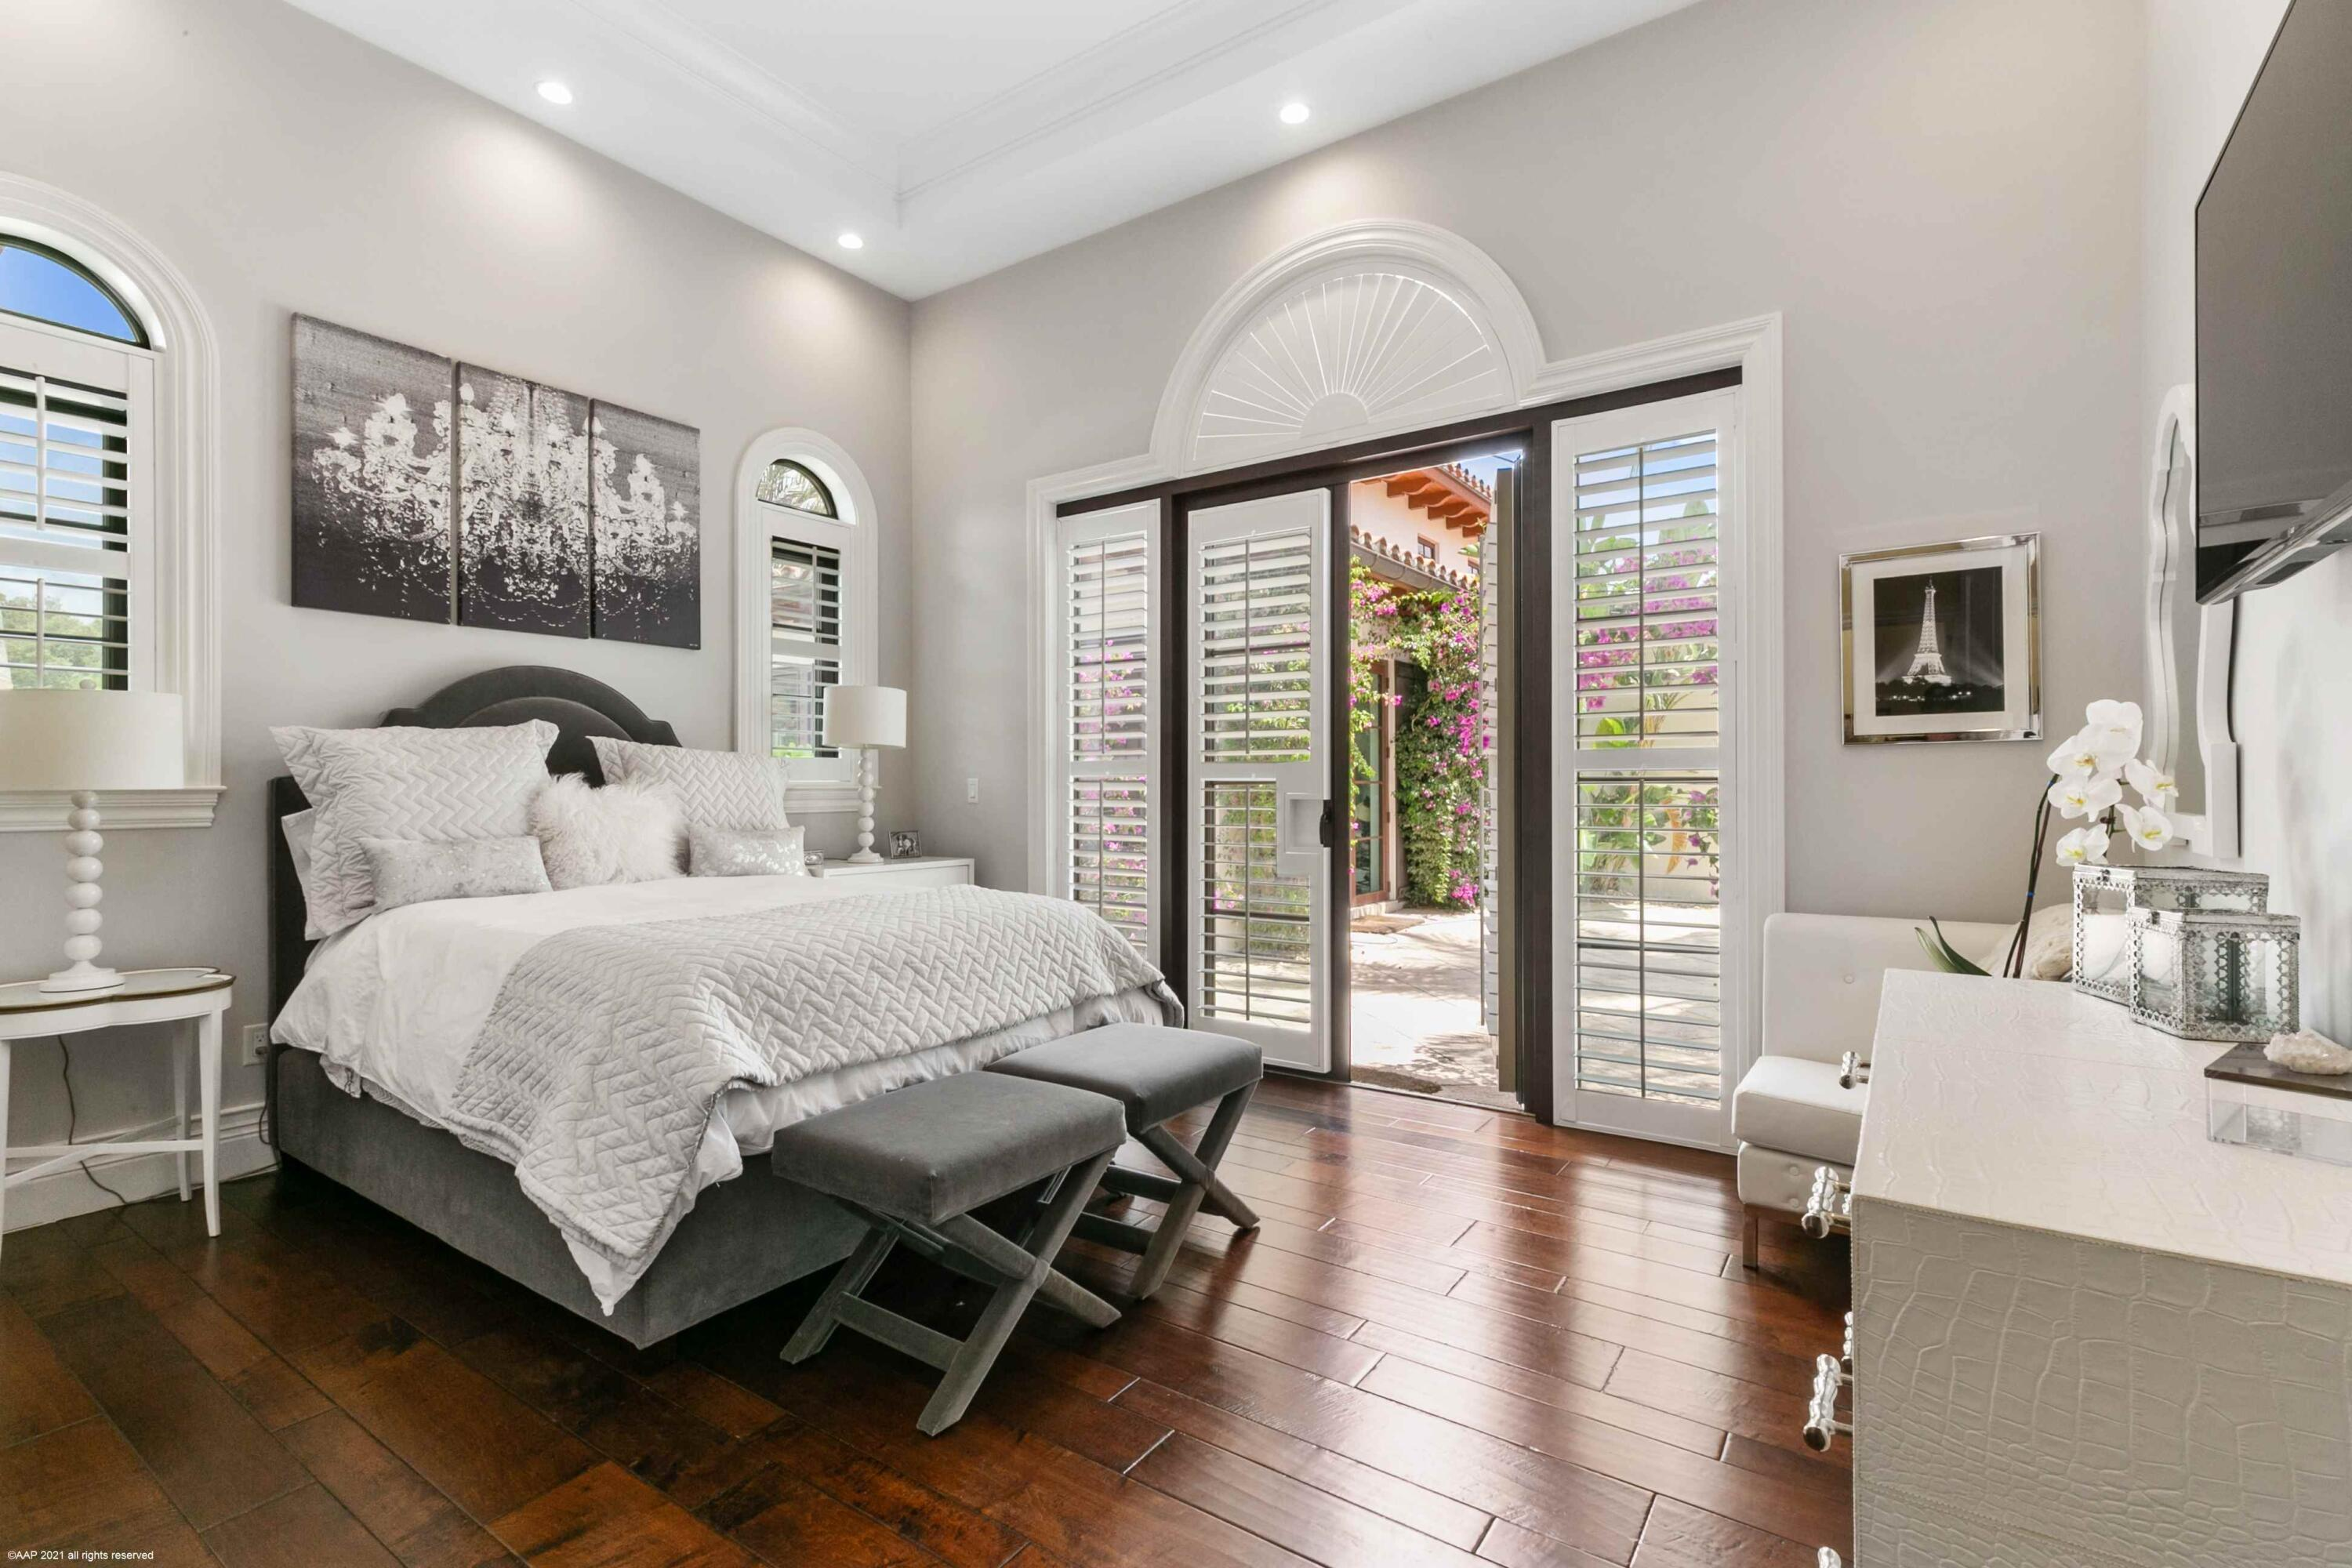 House Guest Room